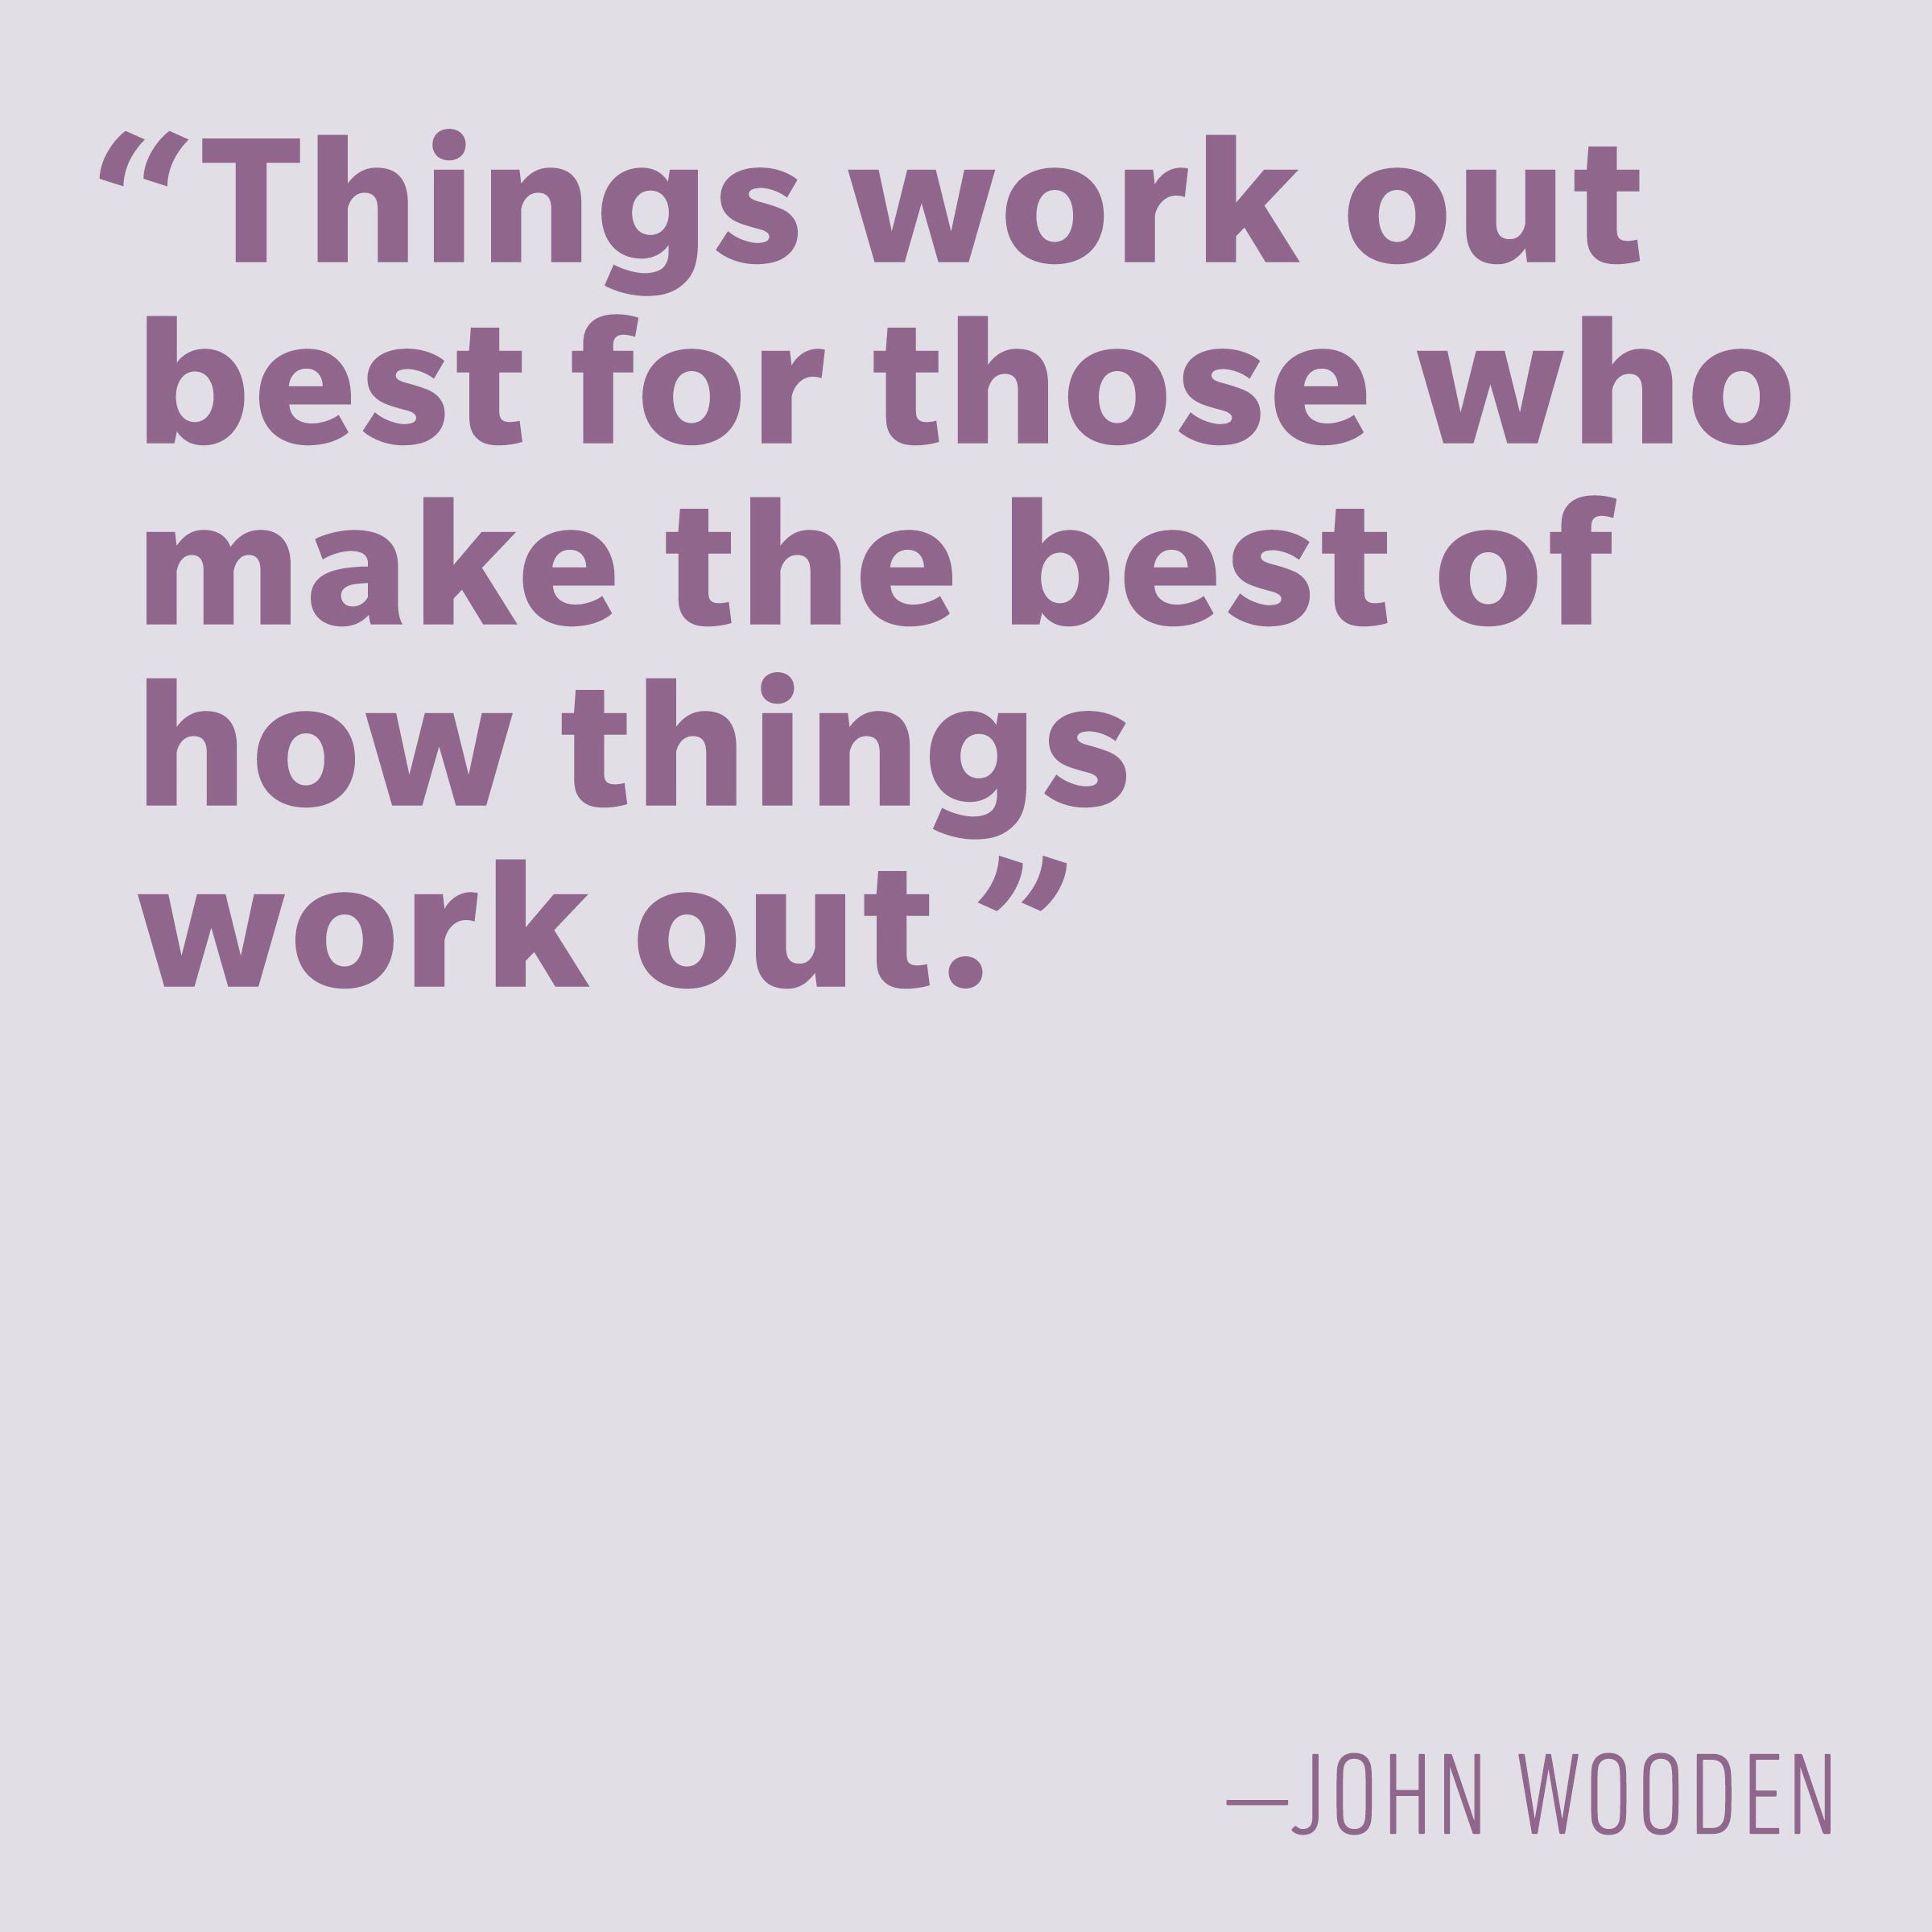 Motivational quotes - John Wooden